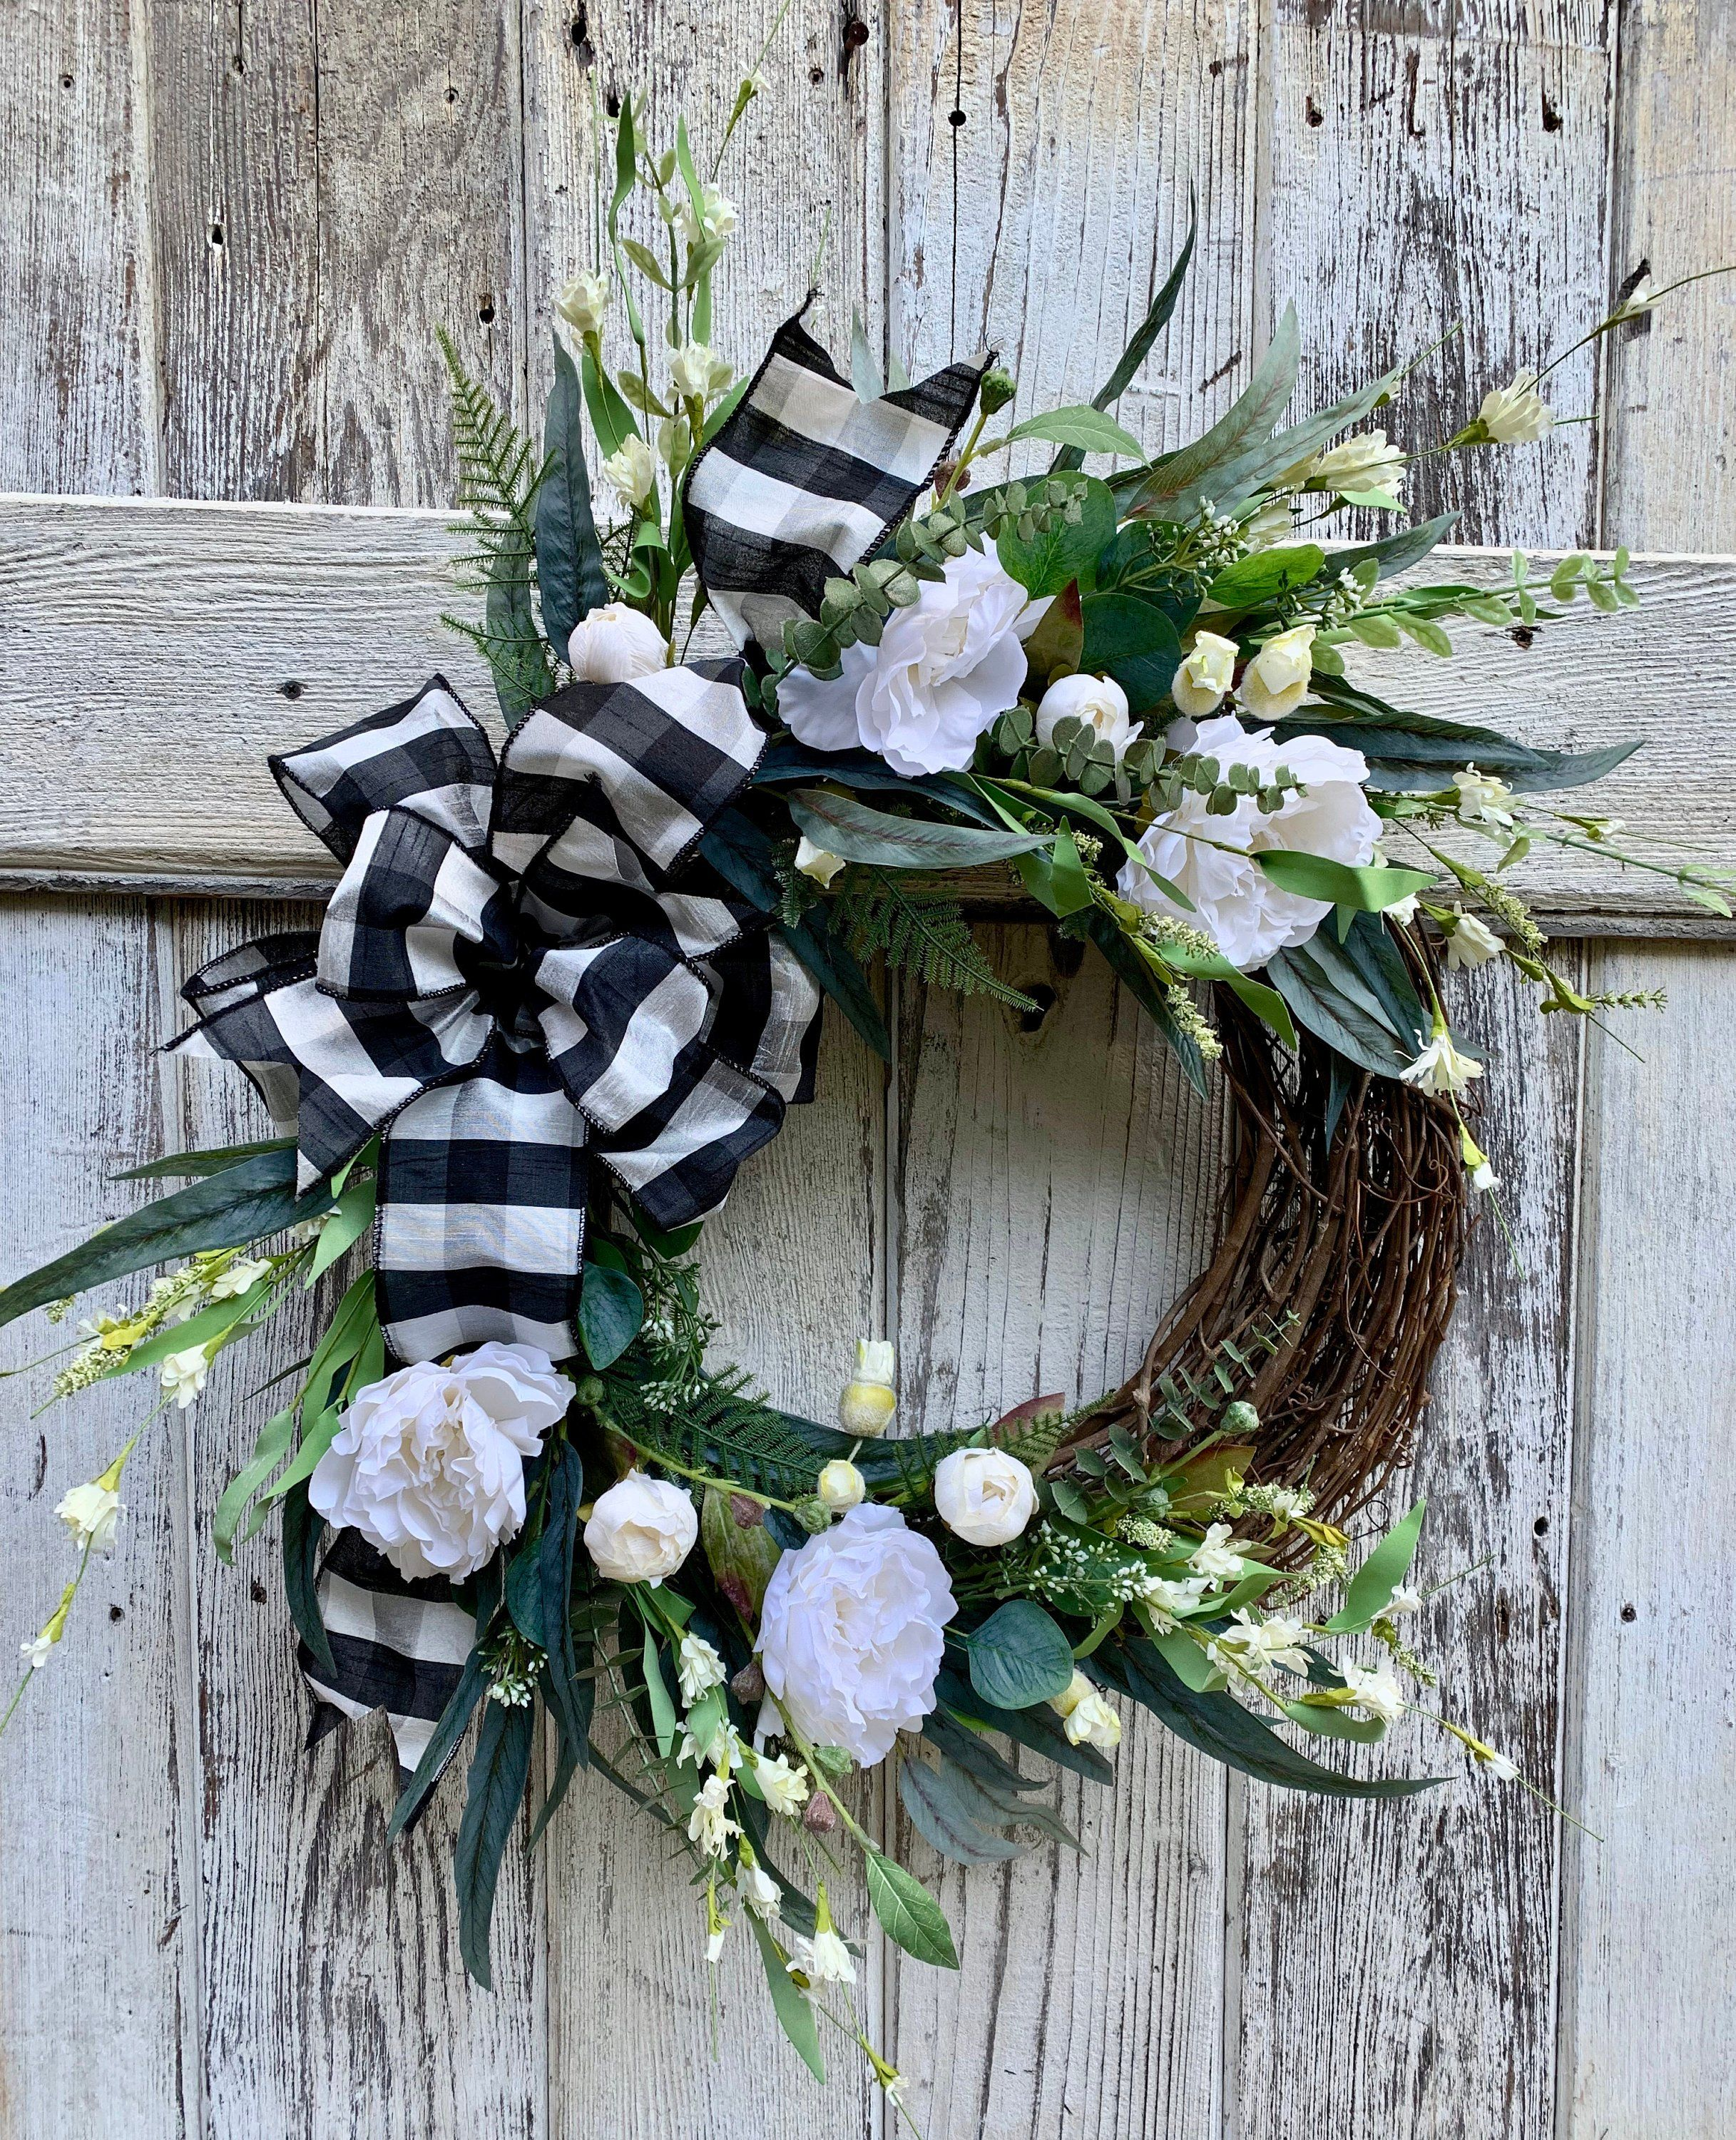 Farmhouse Wreath Modern Farmhouse White Peonies Wreath Front Door Decor Wedding Gift Housewarming Farmhouse Wreath Everyday Wreath Wreaths For Front Door